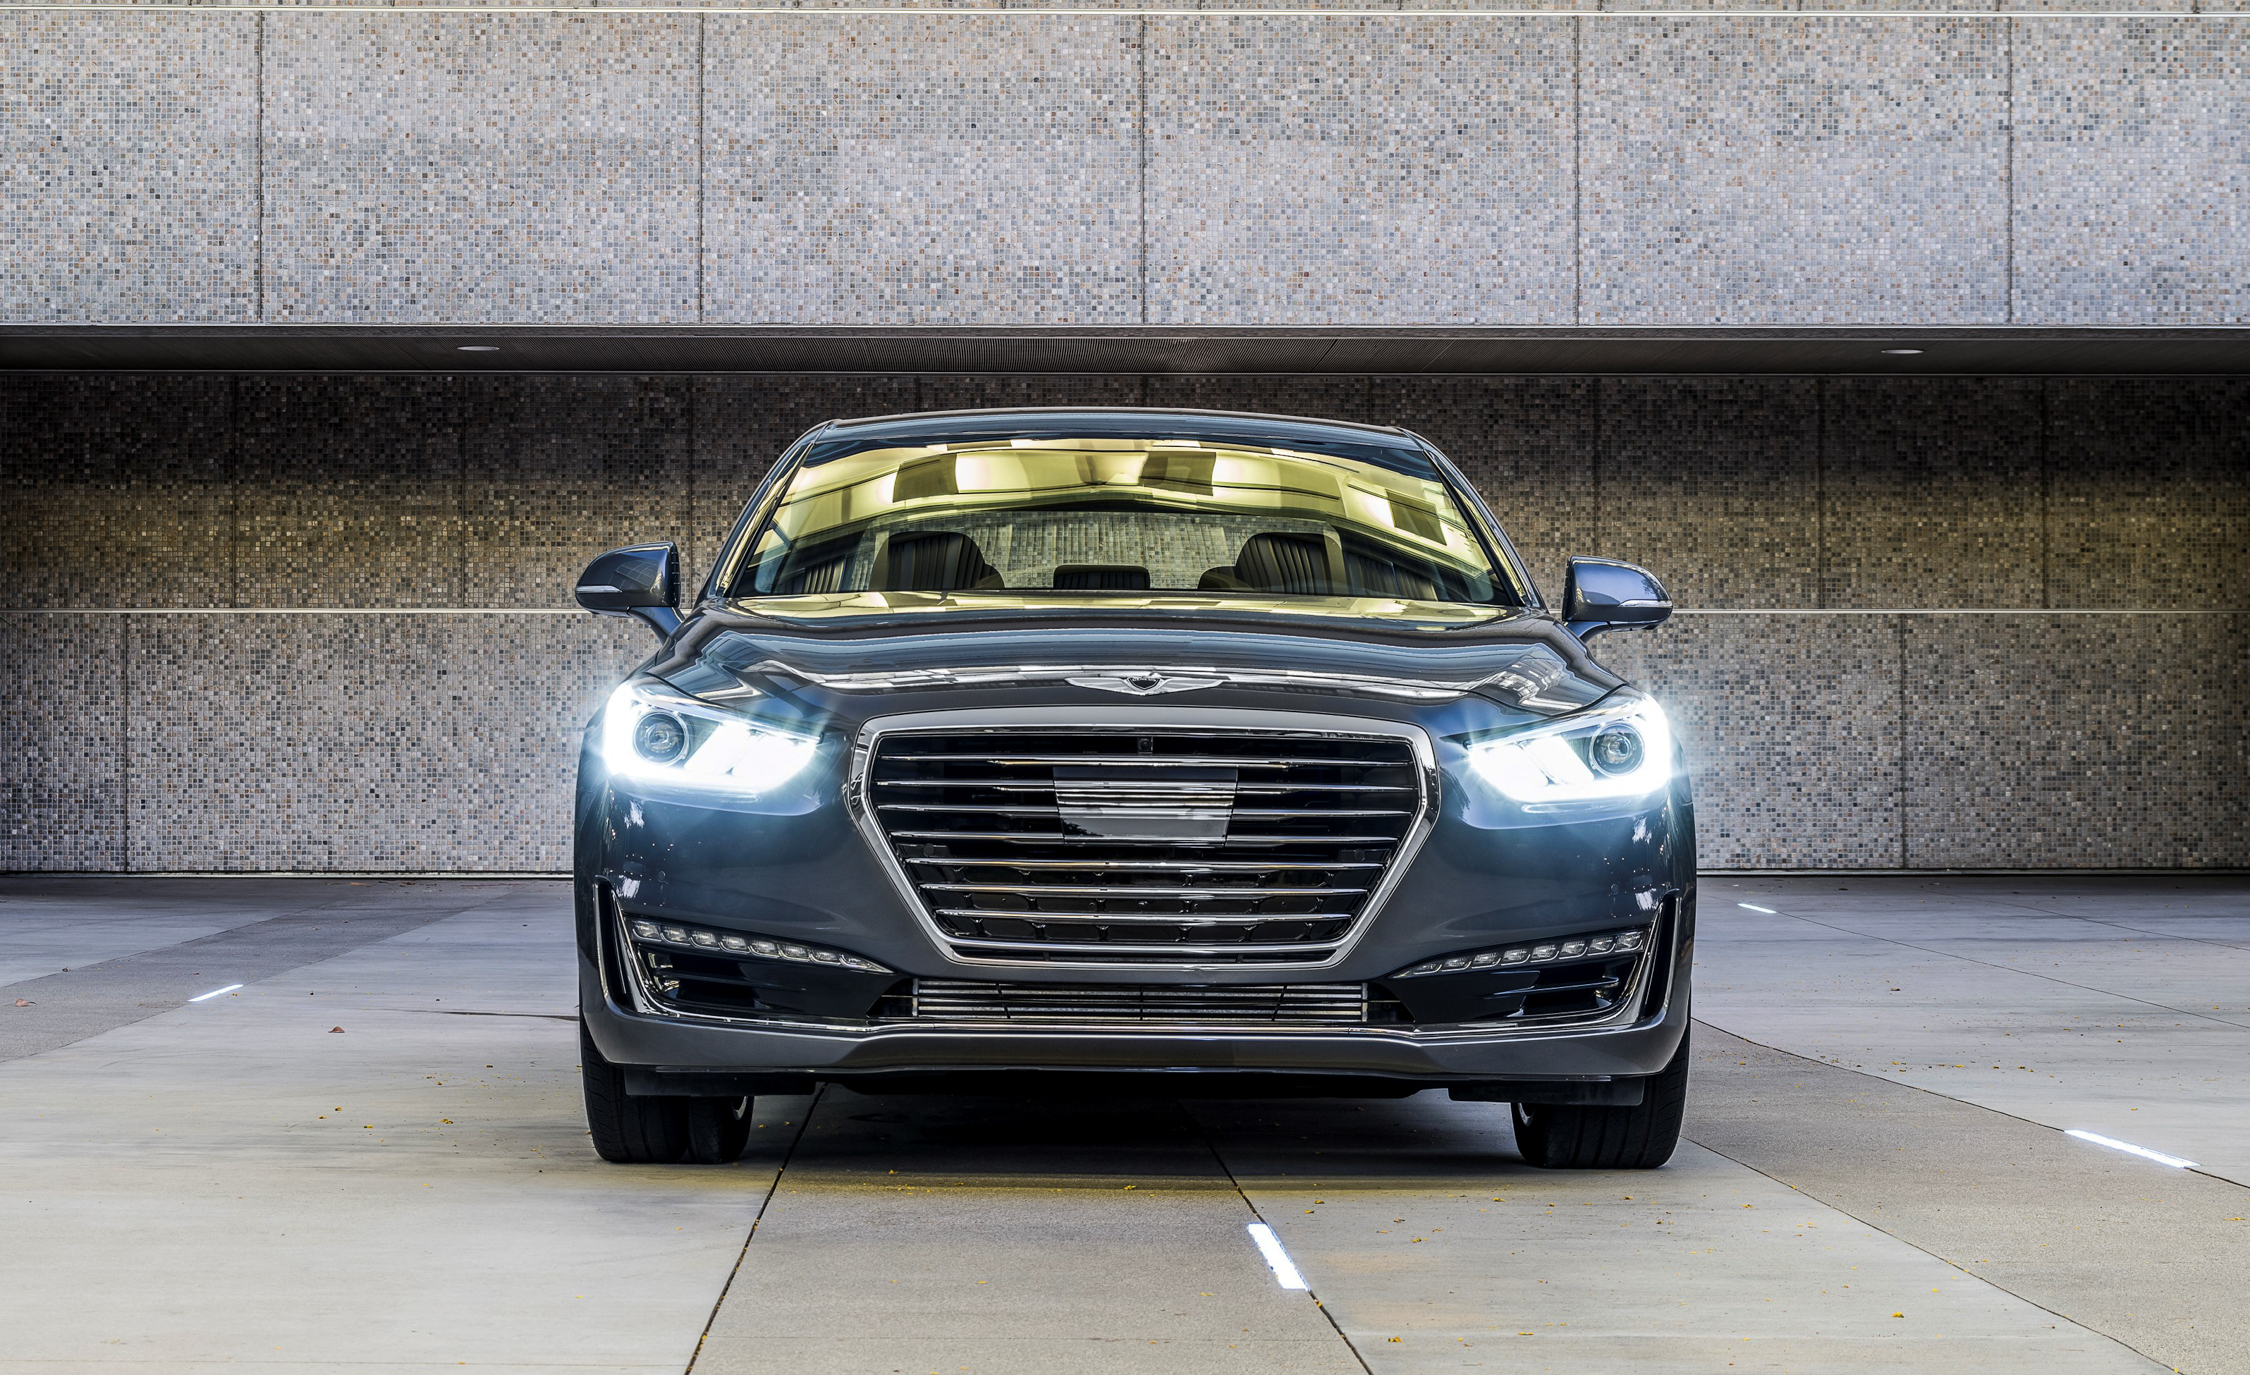 2017 Genesis G90 Exterior Front End (Photo 5 of 19)